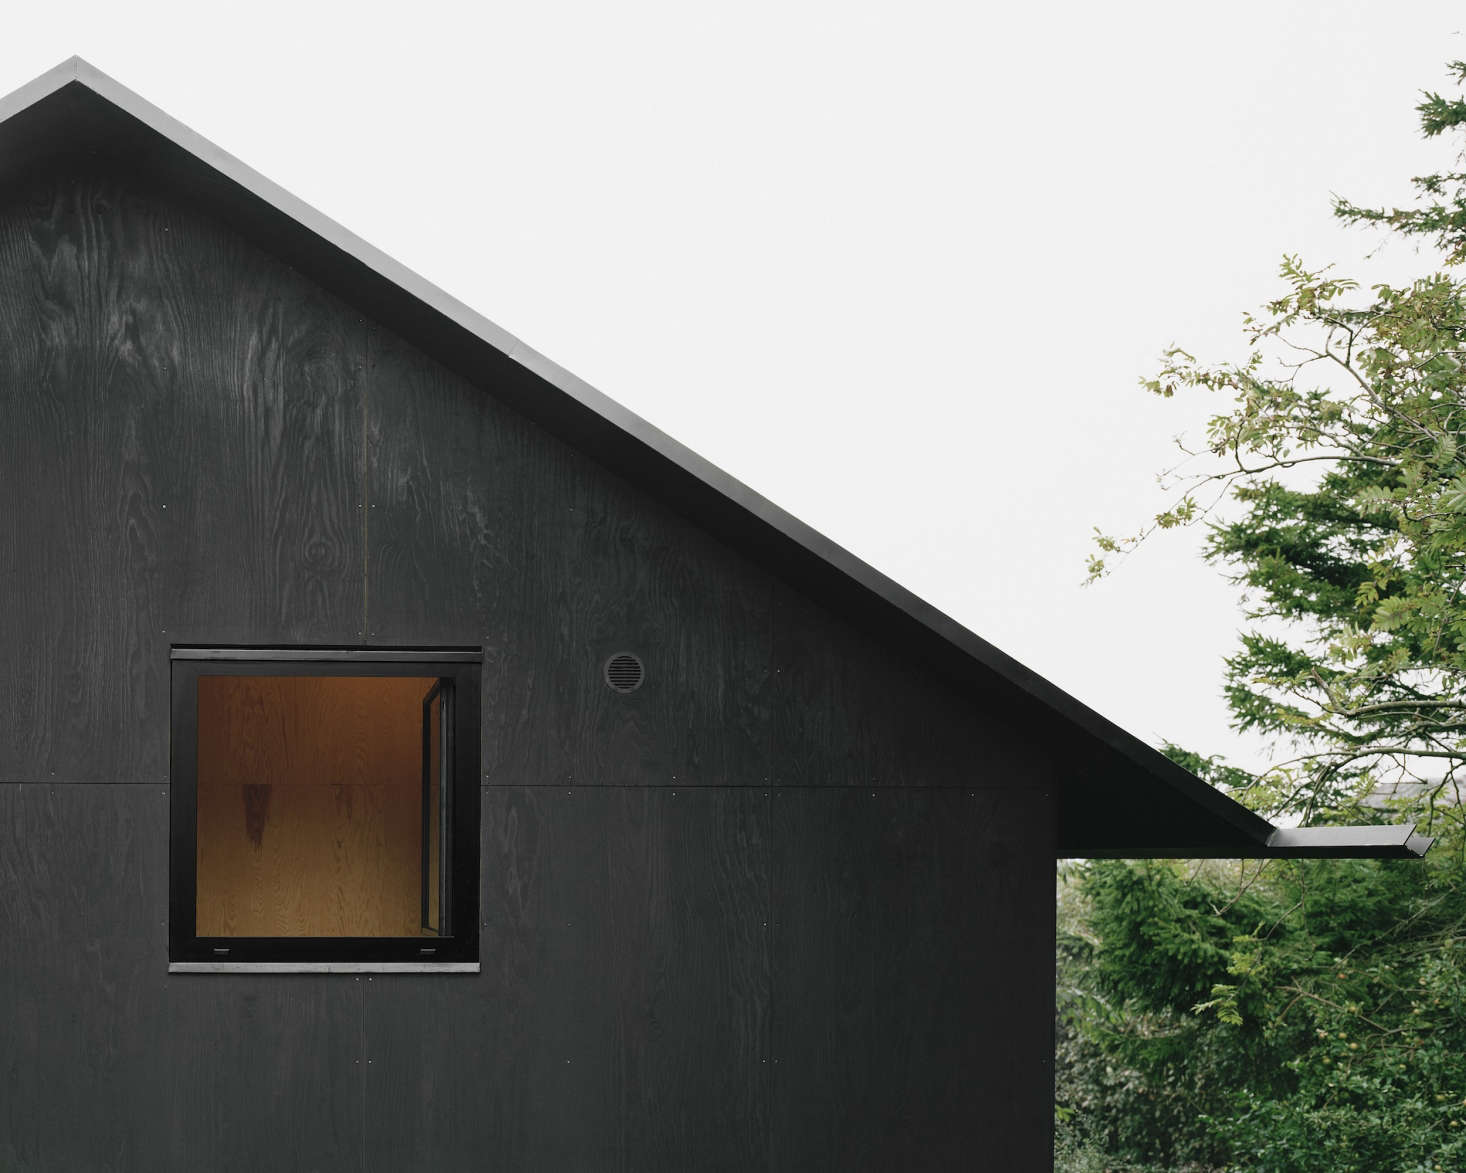 Sheets of plywood, ingeniously coated in tar, is waterproof and visually striking. See Architect Visit: Johannes Norlander in Sweden for more.